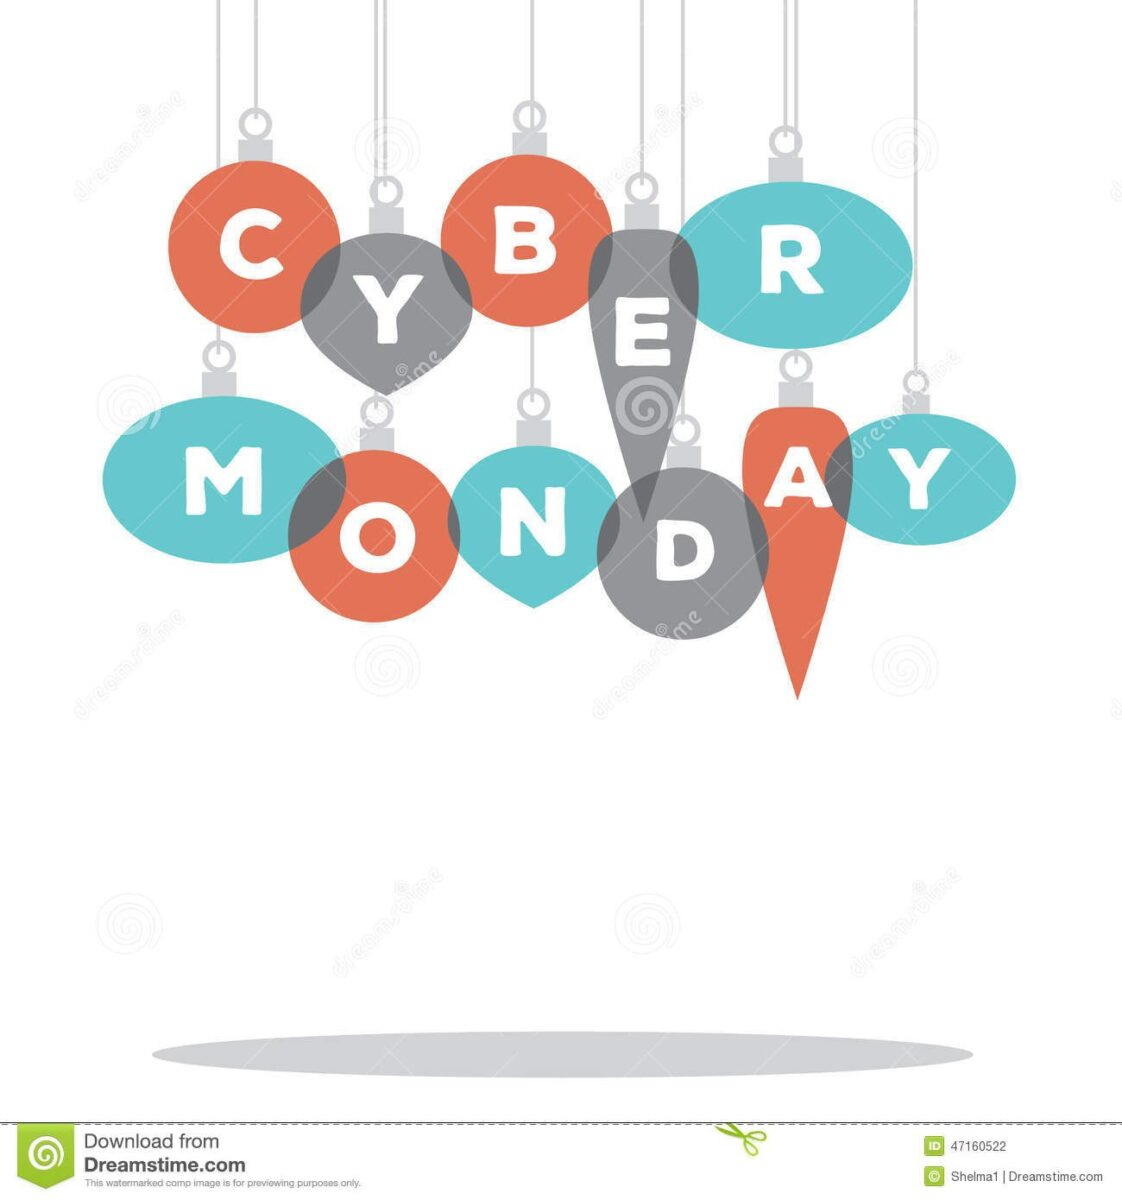 cyber-monday-spelled-christmas-ornaments-eps-illustration-47160522